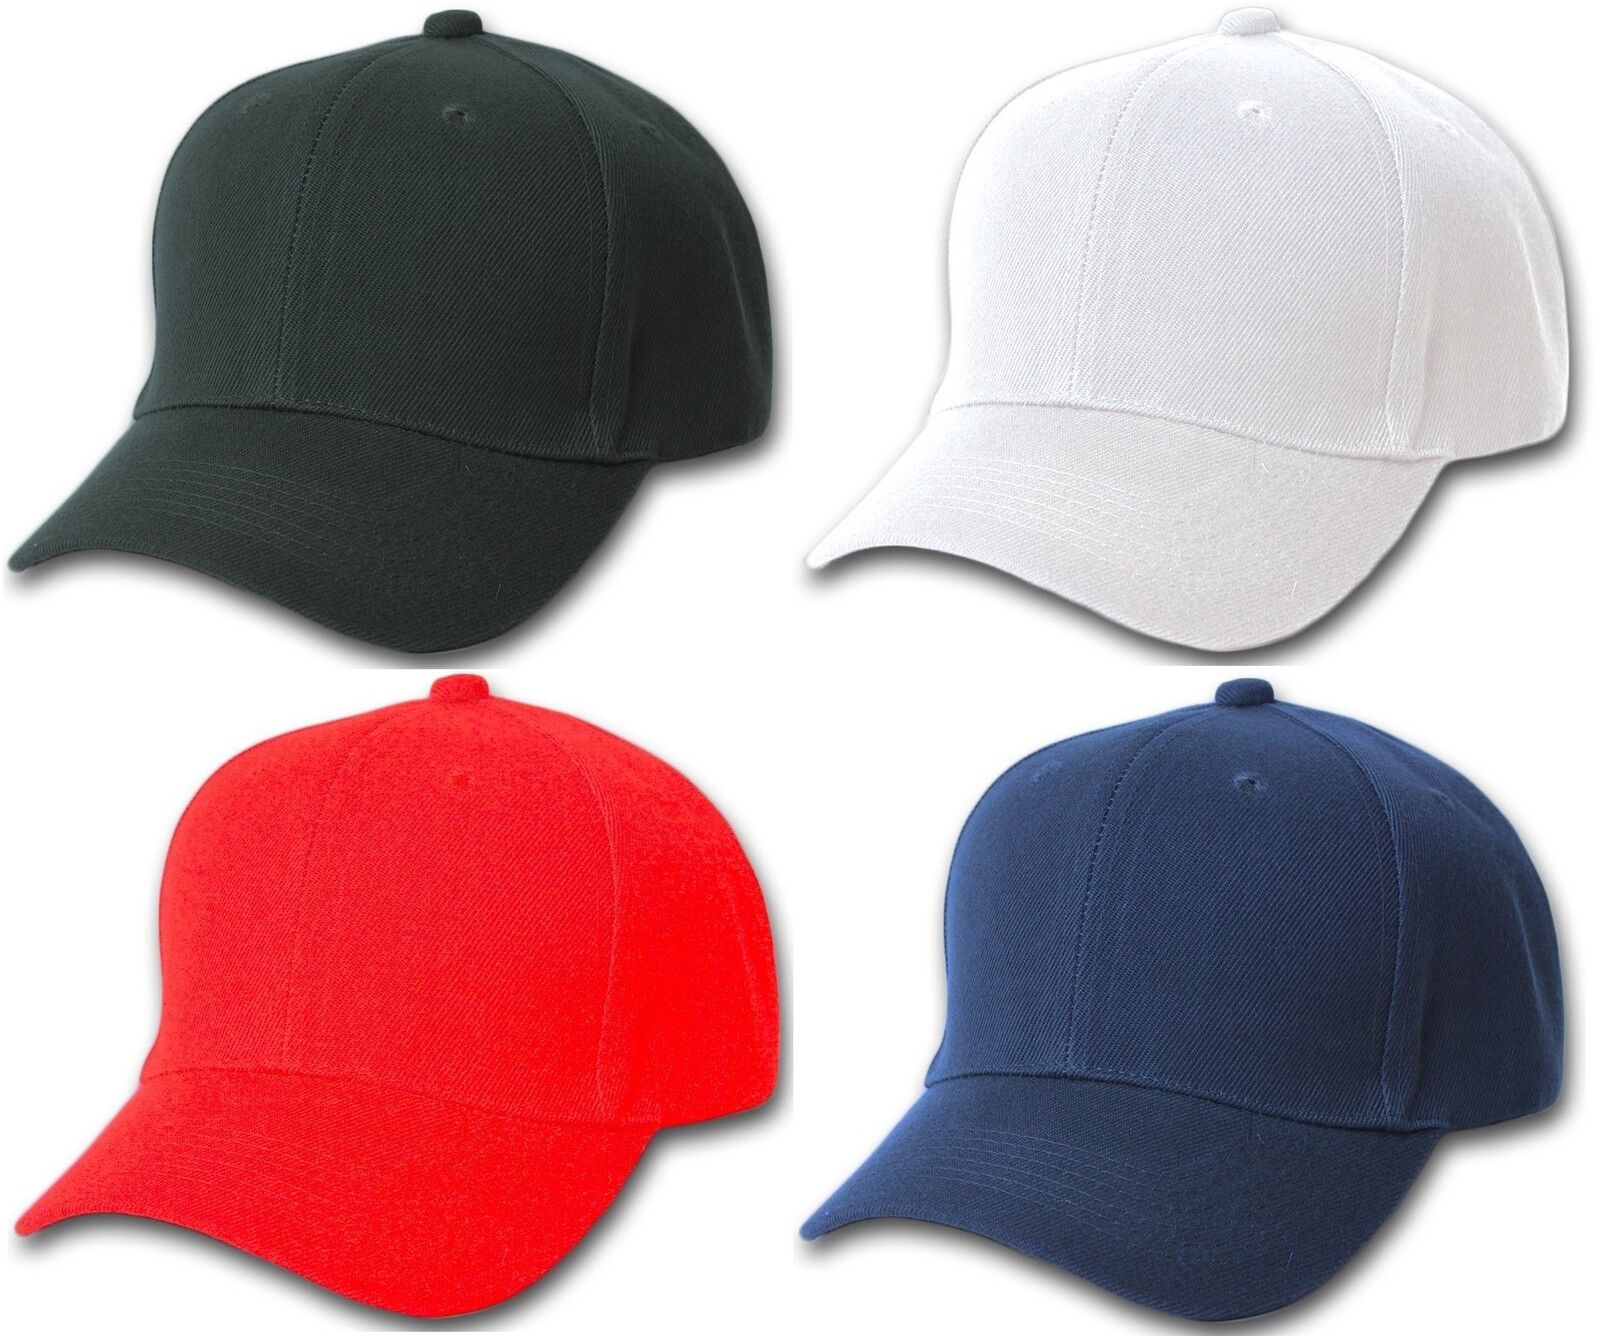 54c7a69adcd Plain Baseball Cap Blank Hat Solid Color Velcro Adjustable Black Blue Red  White